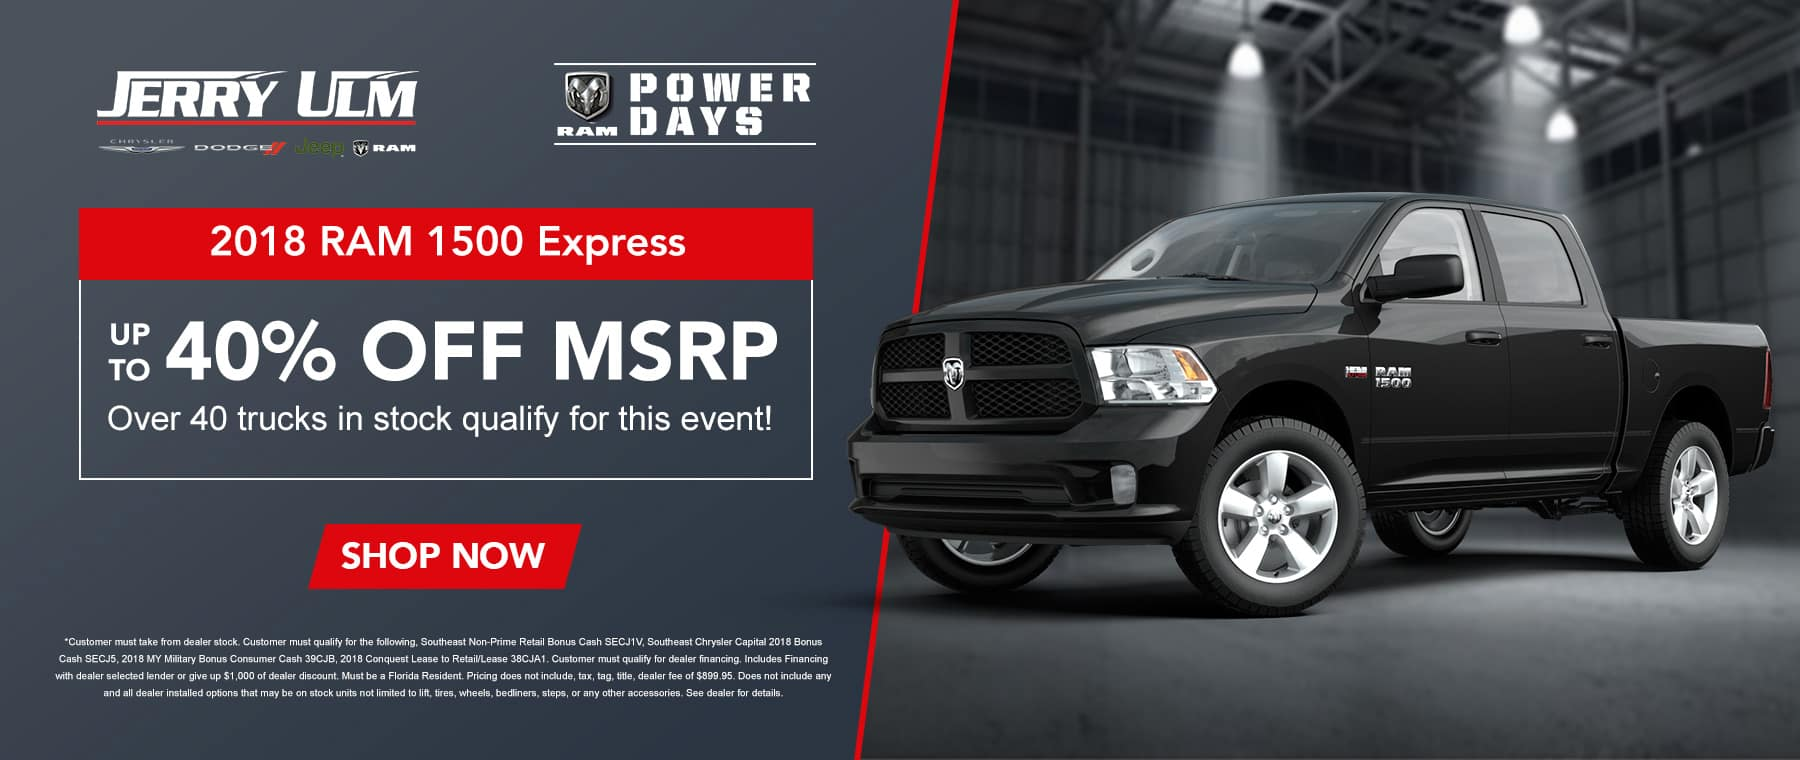 40% off msrp on 2018 RAM 1500